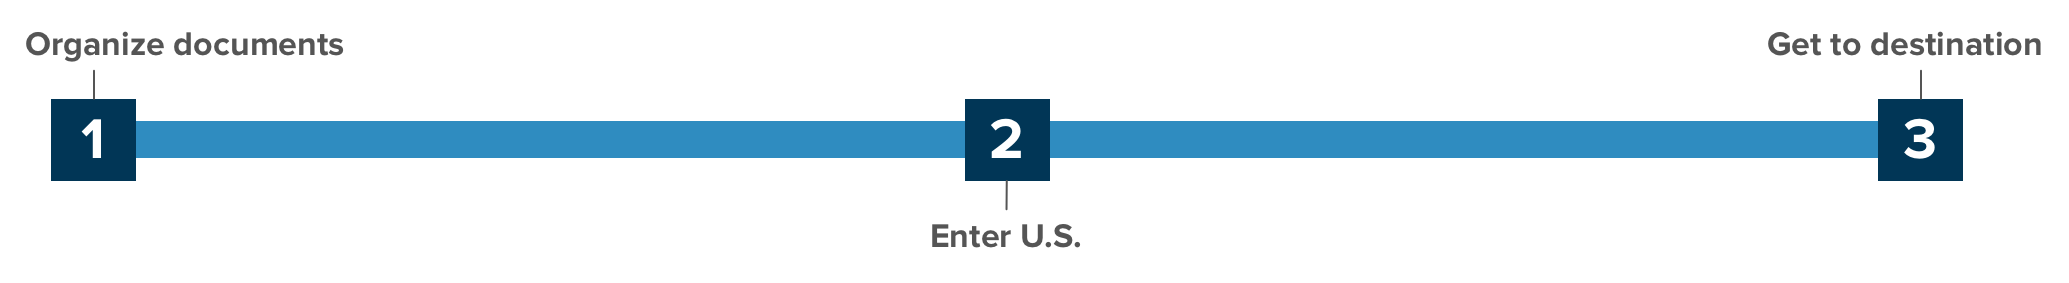 How to Enter the U.S.